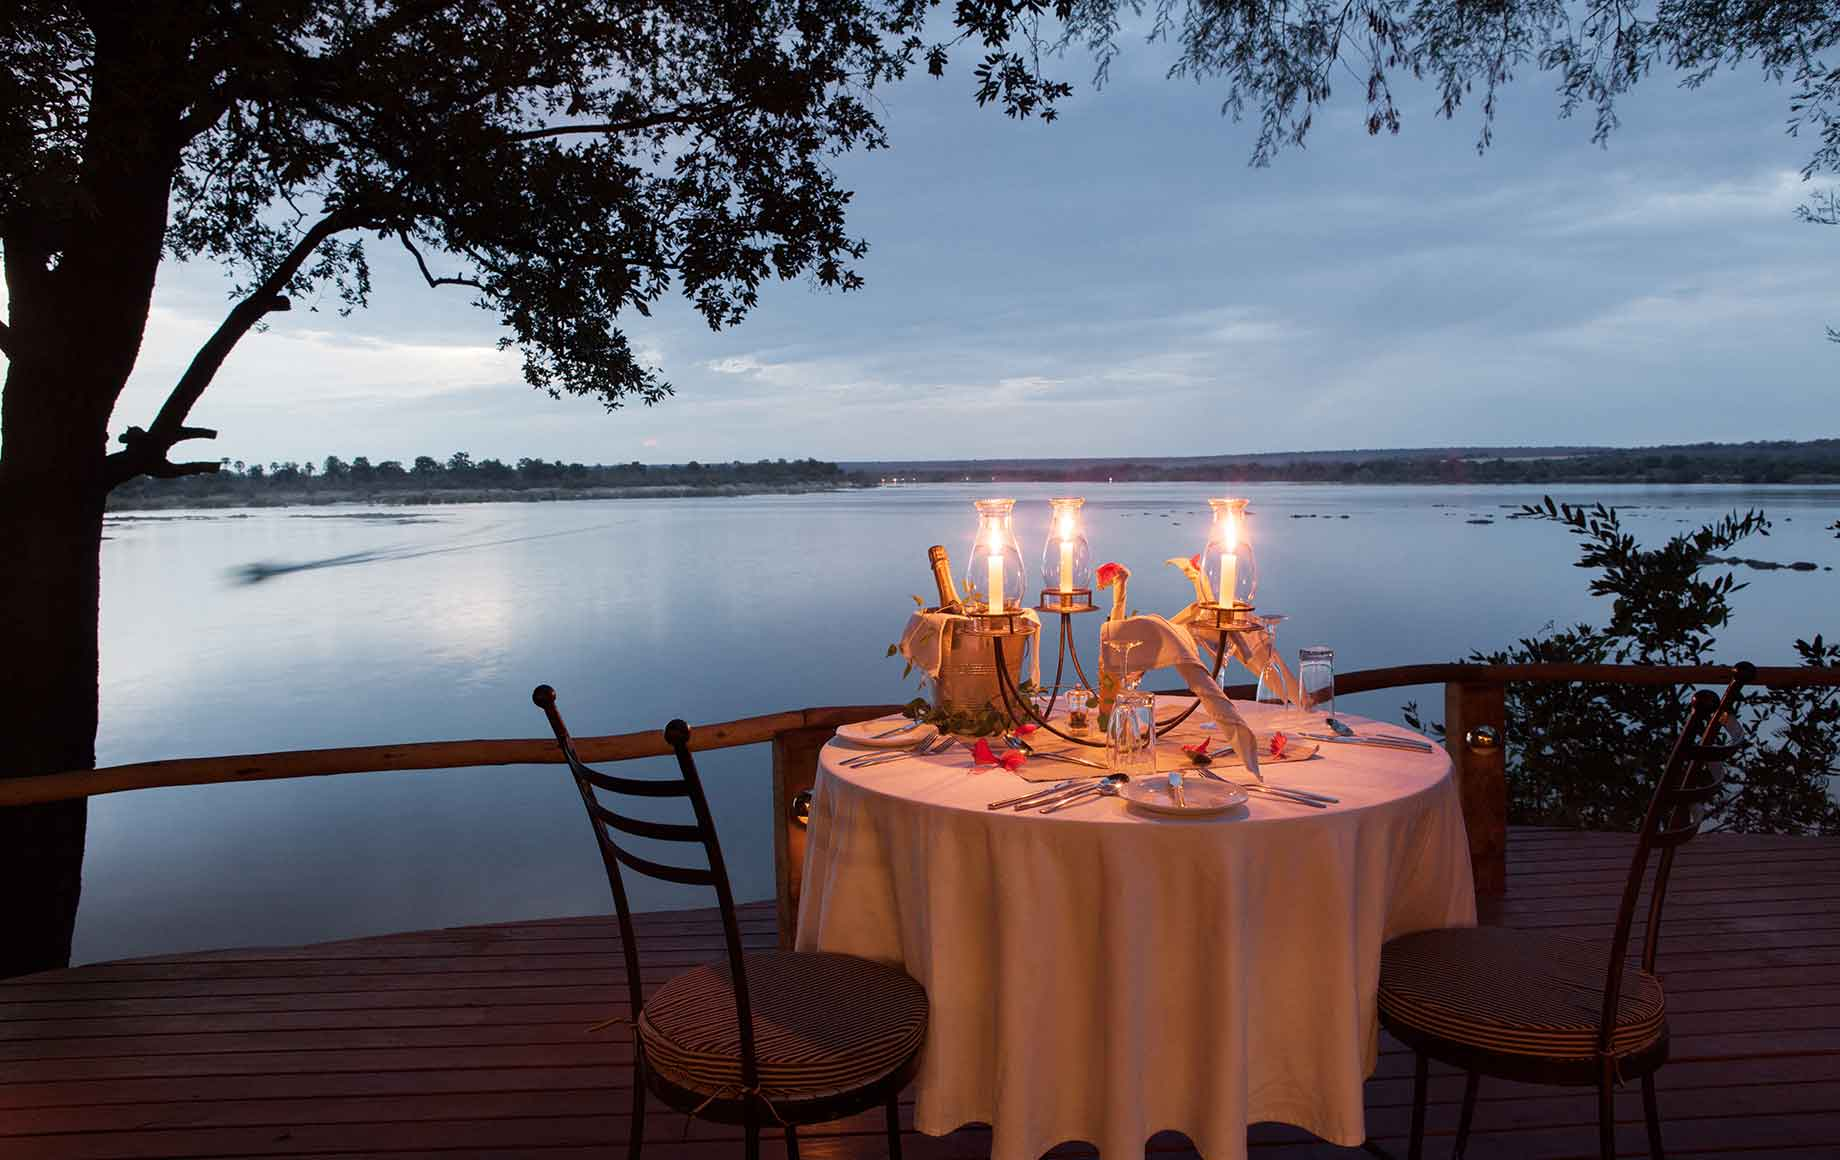 A candlelit dinner on the river at Camp Tongabezi